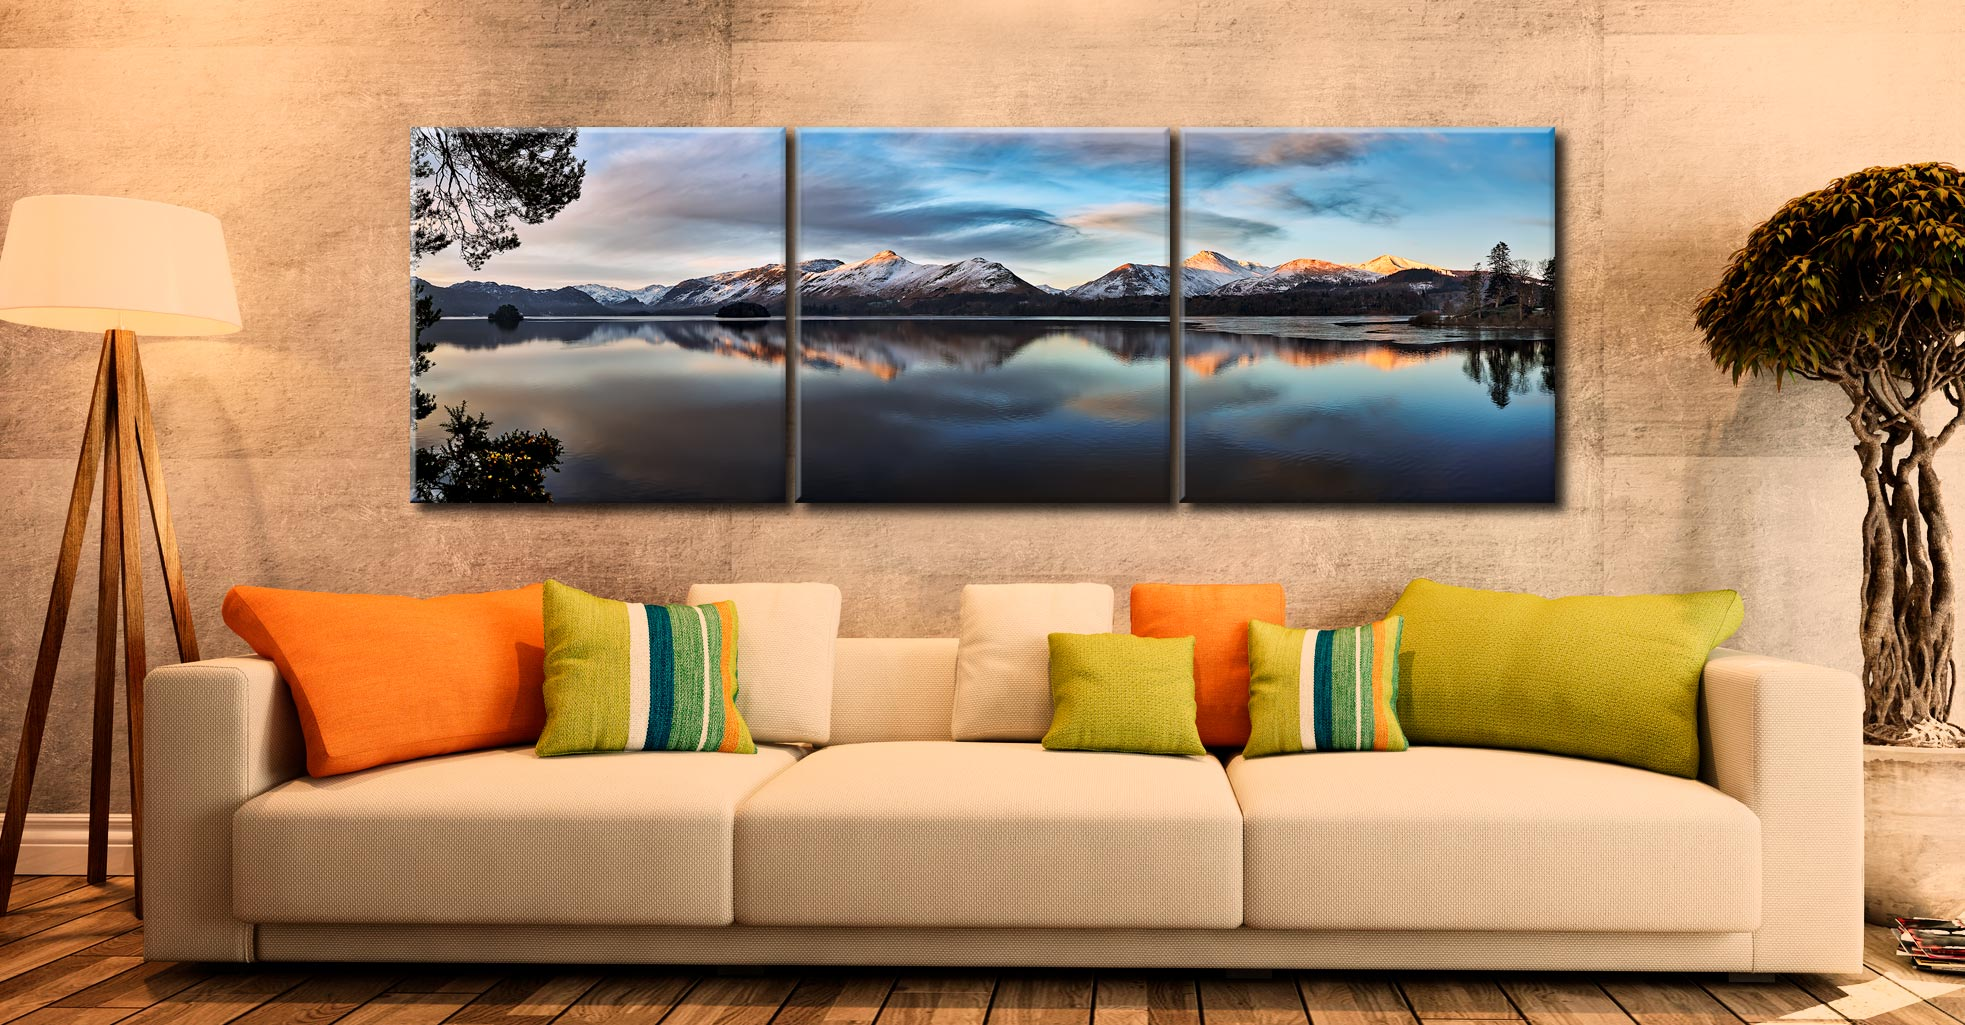 Cat Bells from Friars Crag - 3 Panel Canvas on Wall